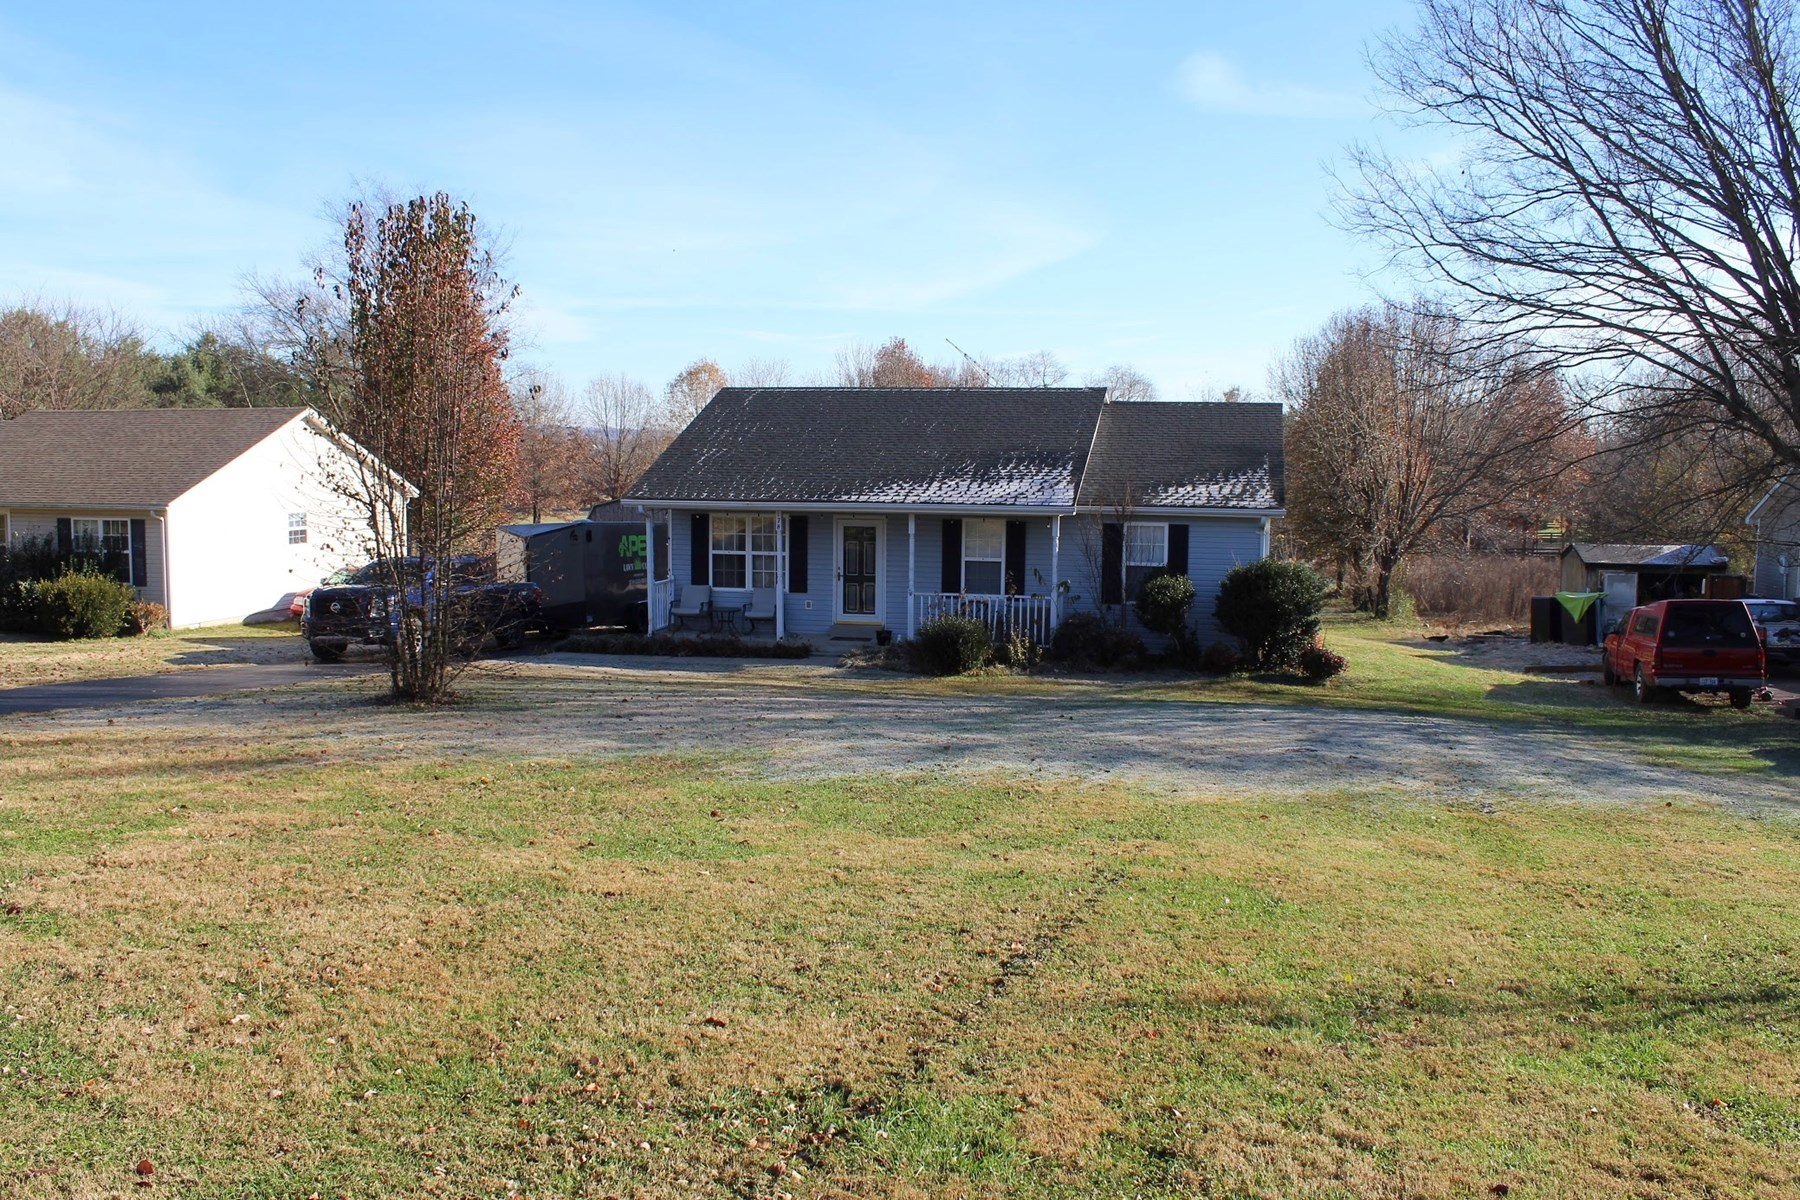 3 Bedroom 2 Bath home for sale near Bowling Green Ky